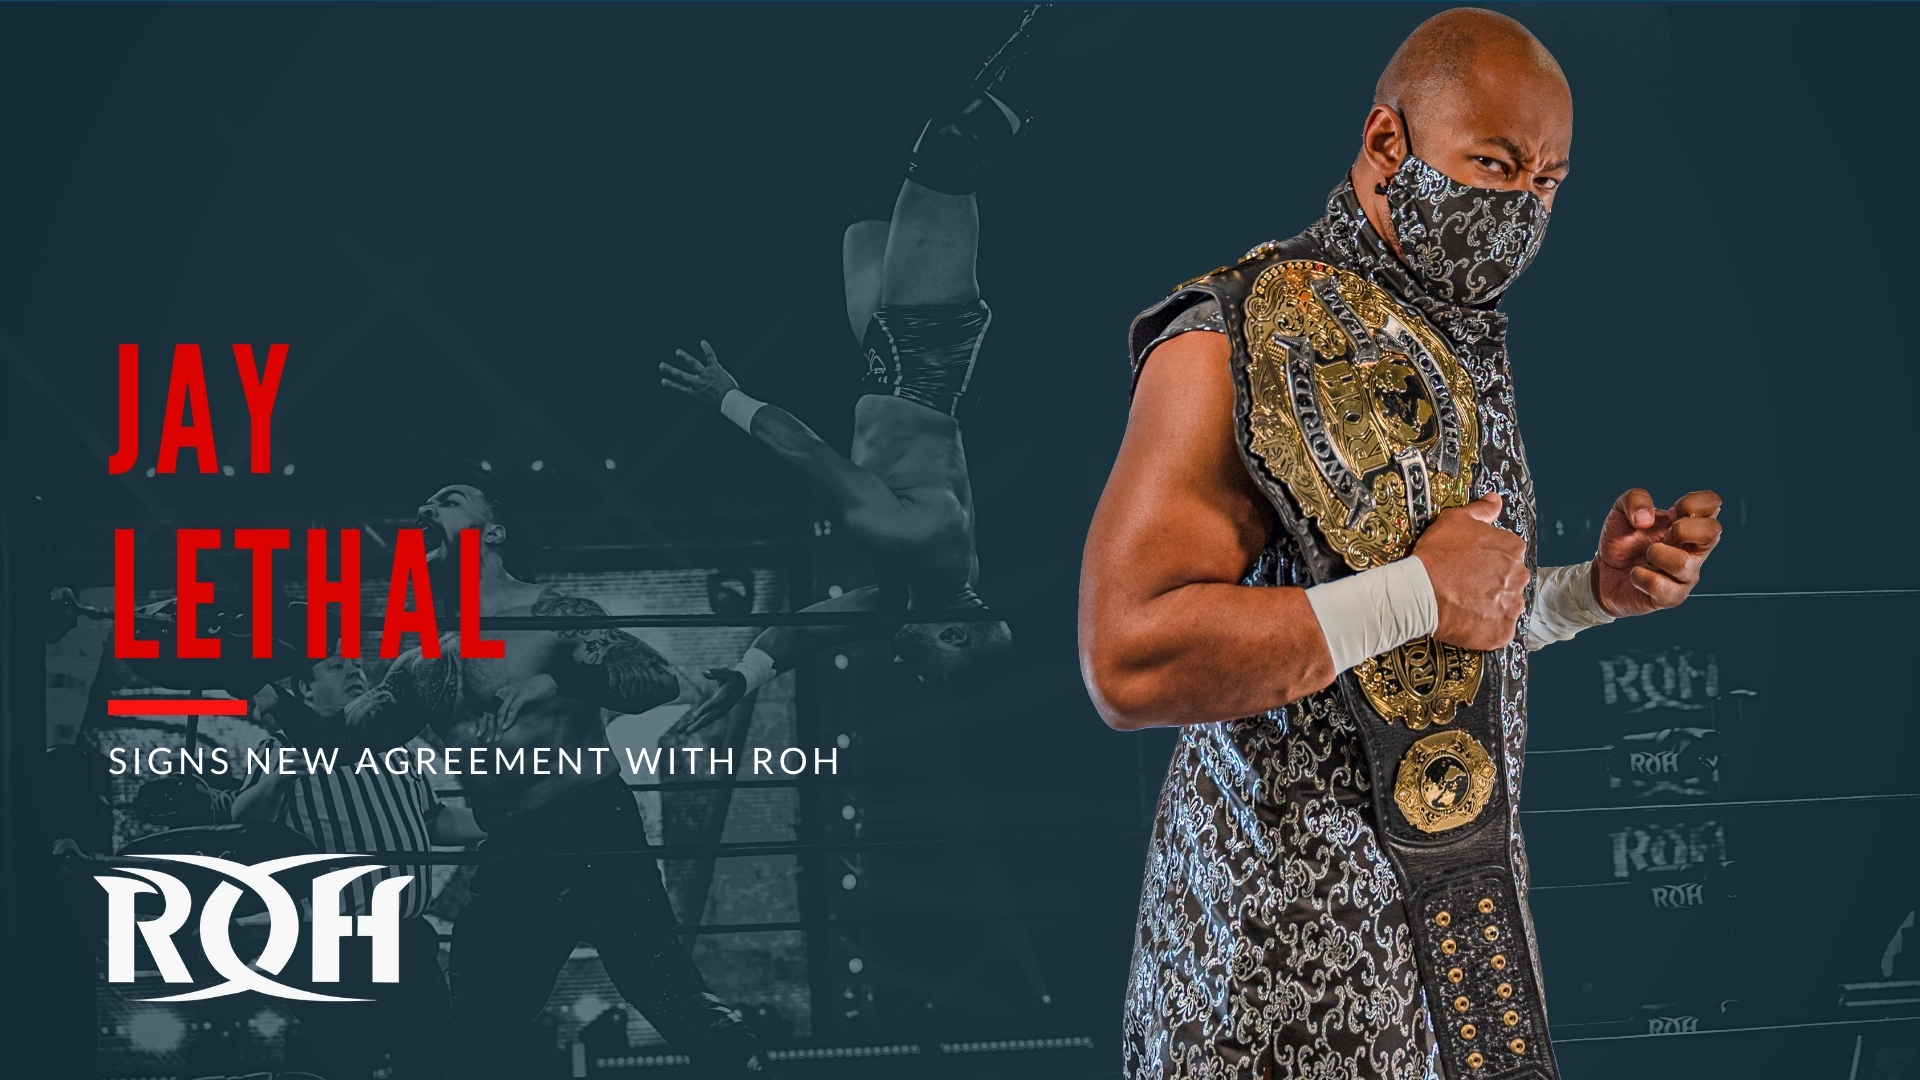 Jay Lethal ROH 2021